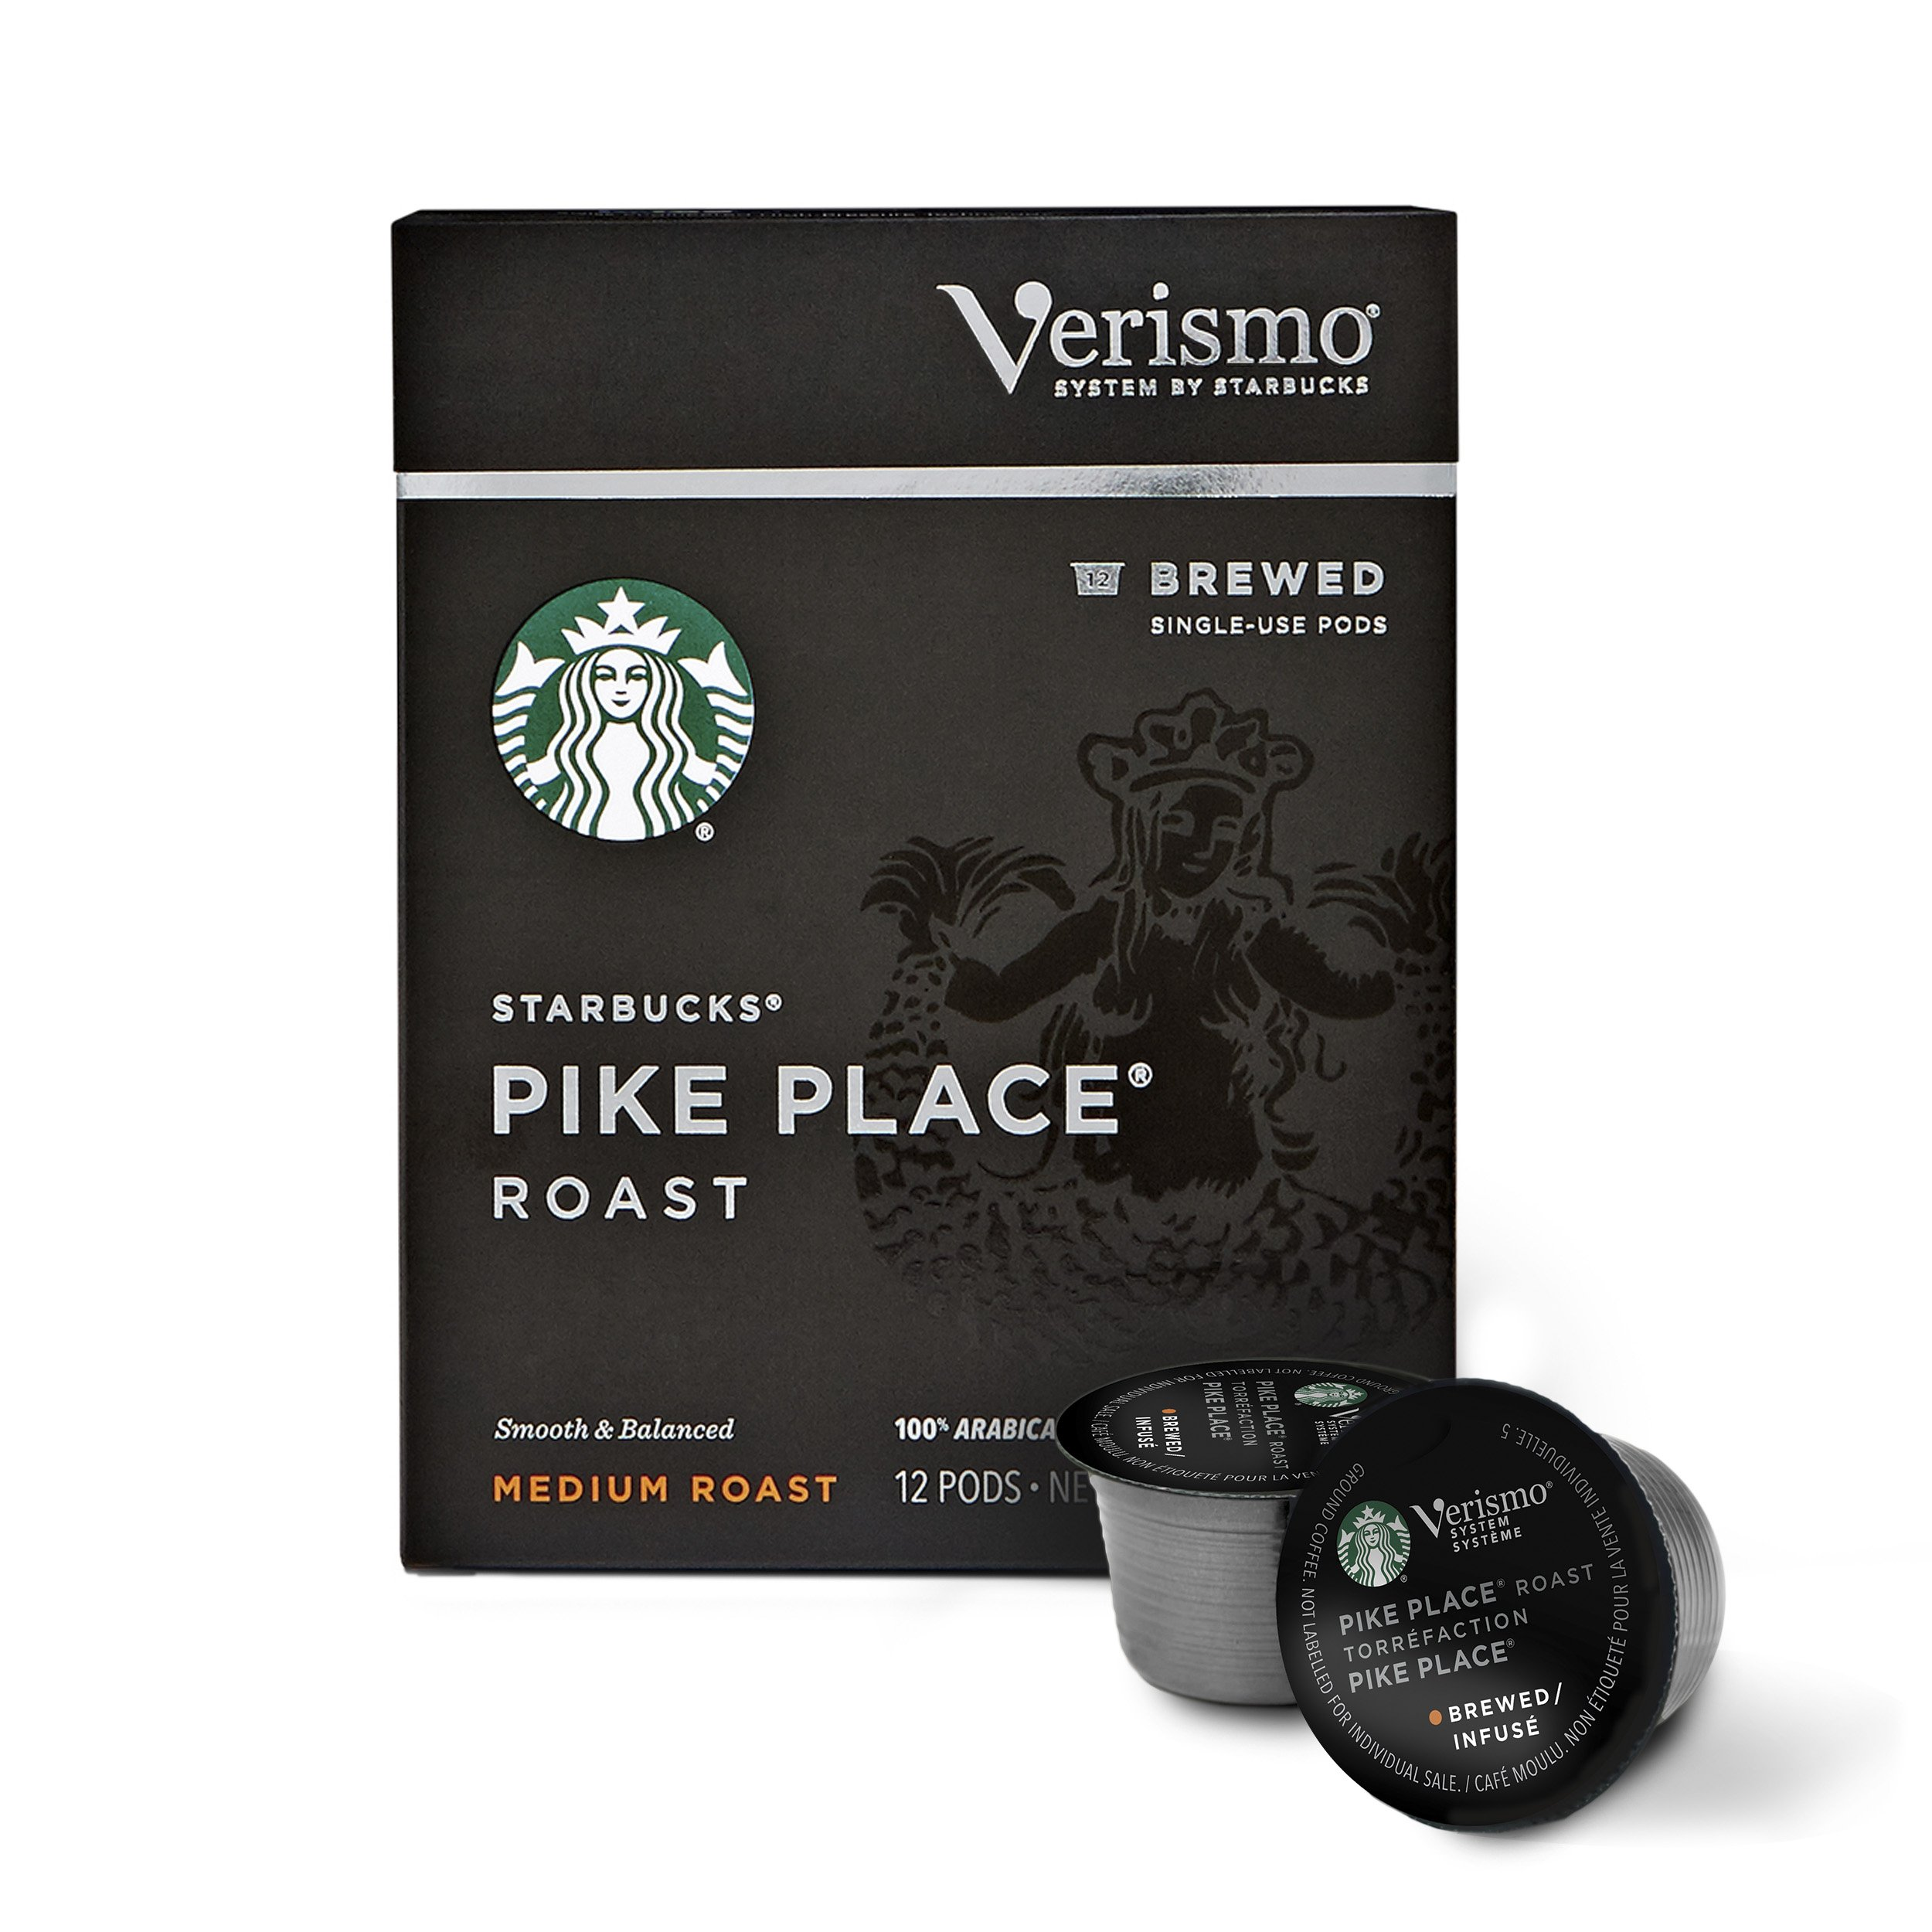 Starbucks Verismo Pike Place Roast Brewed Coffee Single Serve Verismo Pods, Medium Roast, 6 boxes of 12 (72 total Verismo pods) by Starbucks